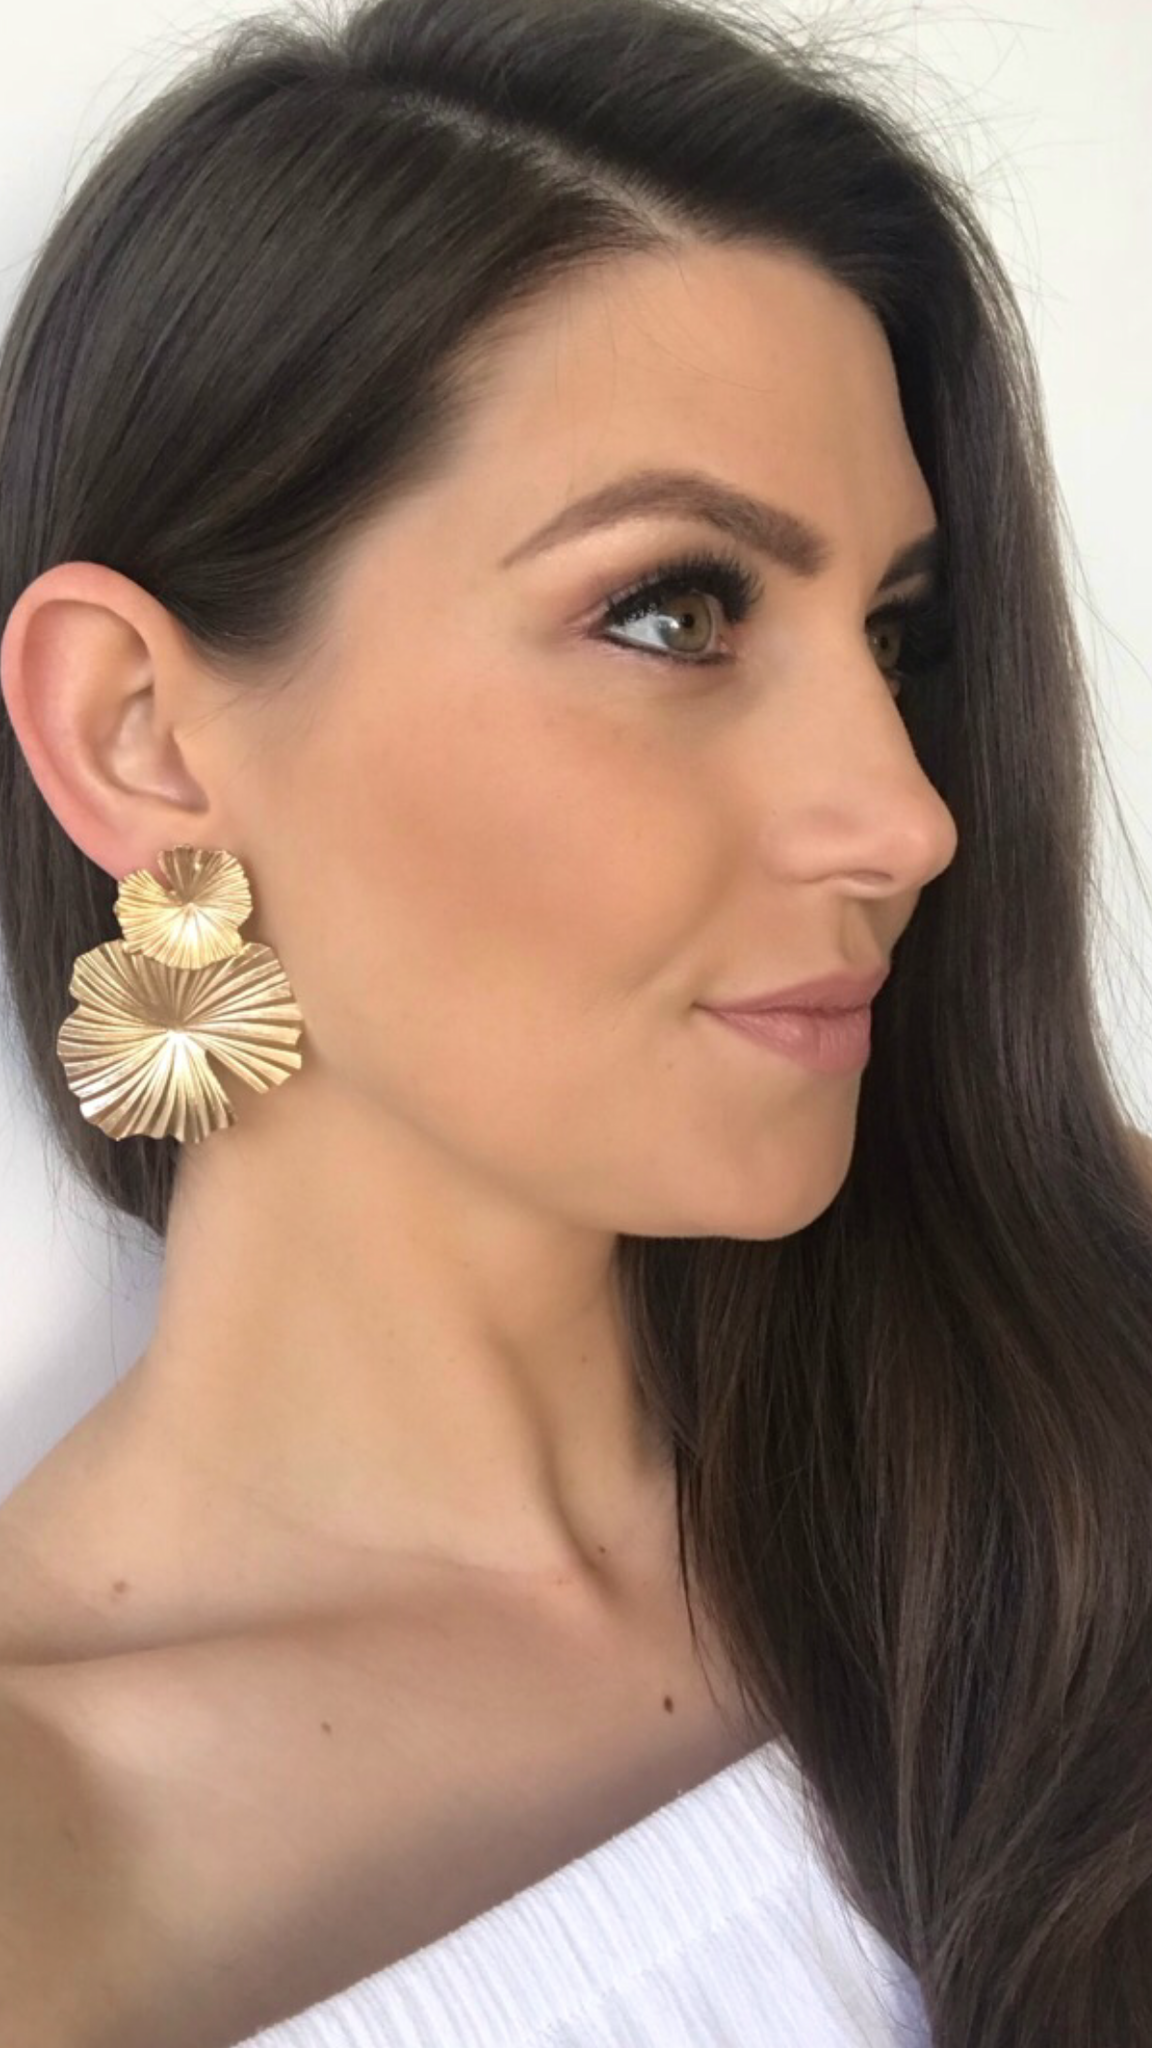 Veronica Earrings